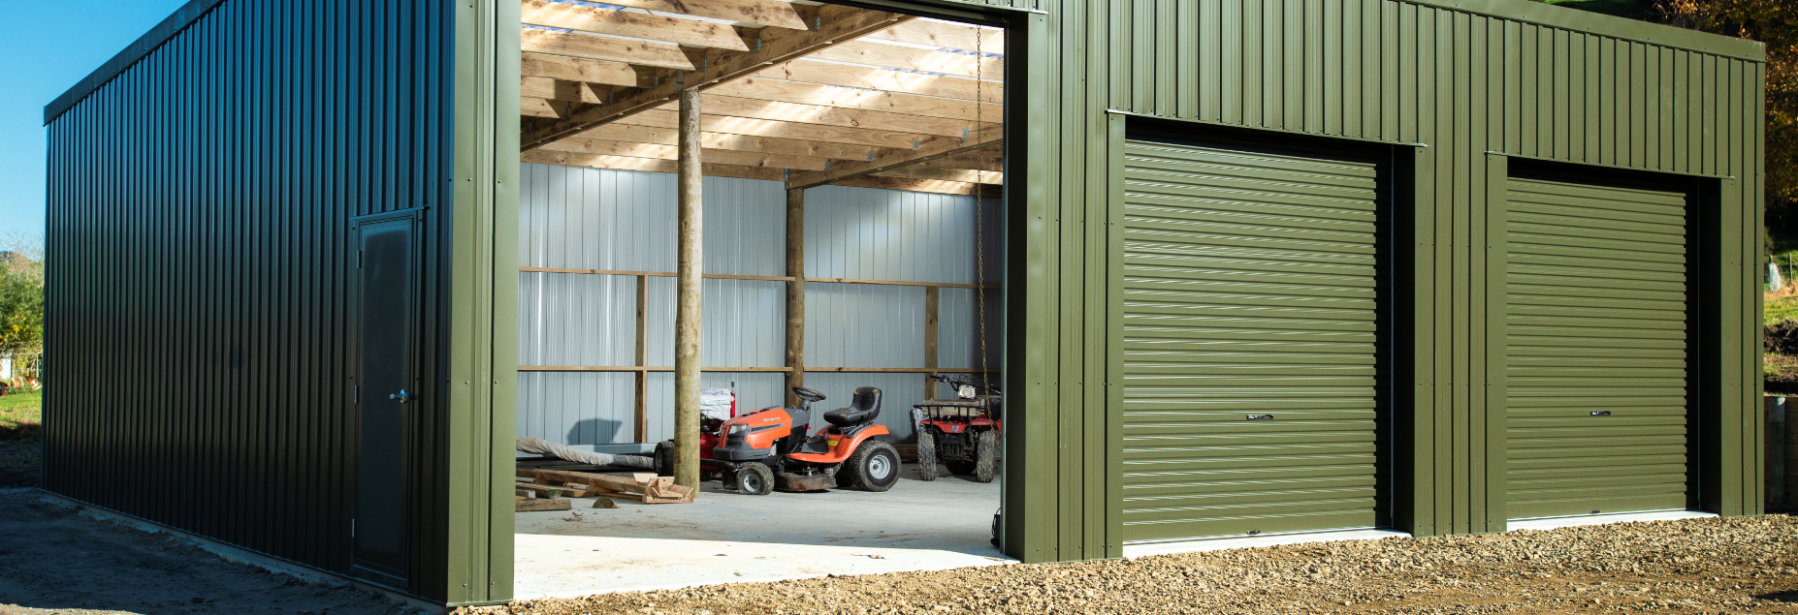 Sheds For Sale | Custom Timber Pole Sheds & Barns | Sheds9u NZ Convert Carport To Garage Nz